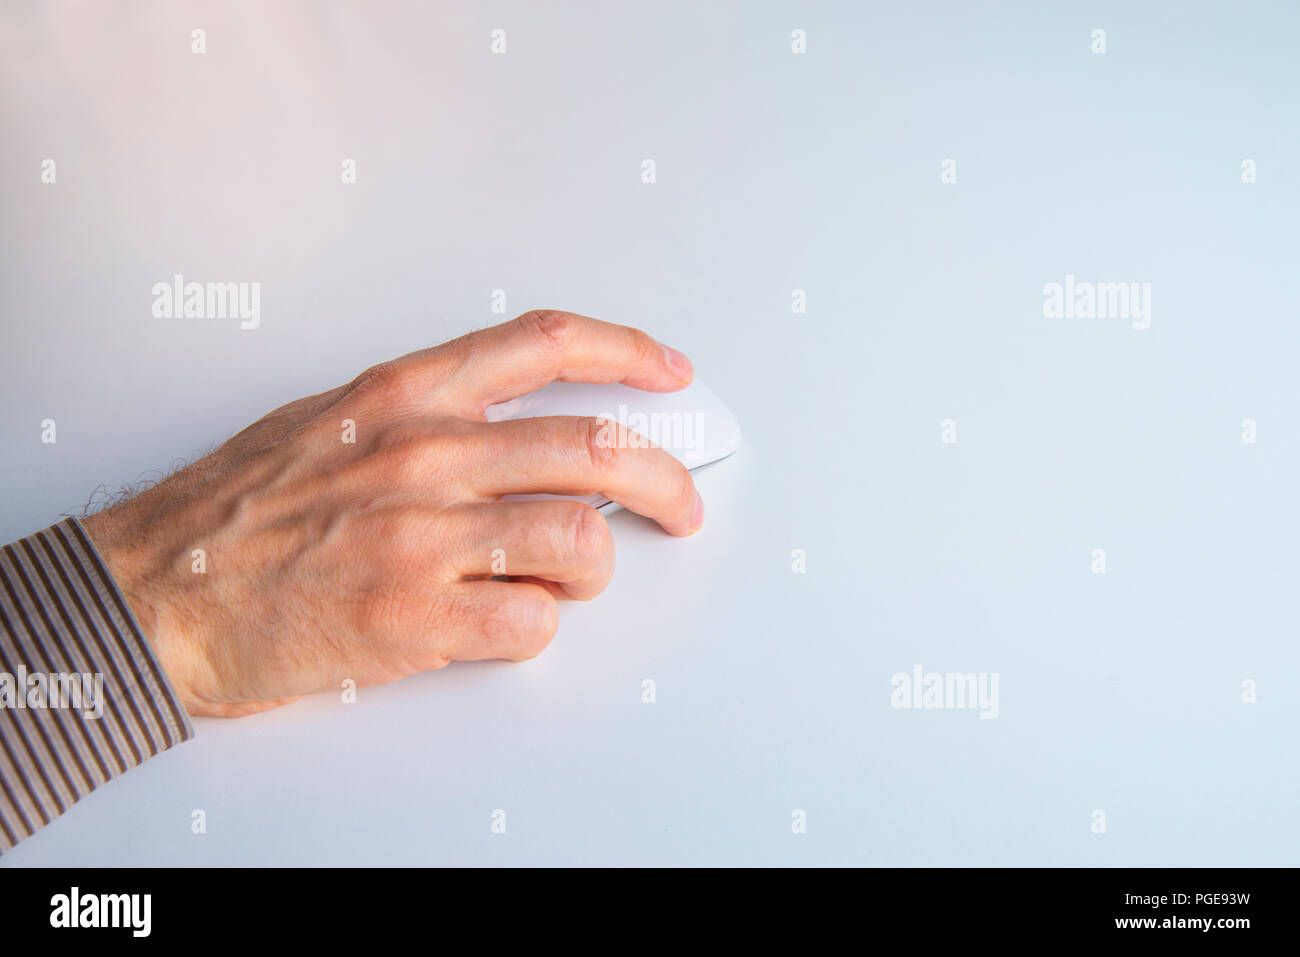 Man's hand using computer mouse. - Stock Image